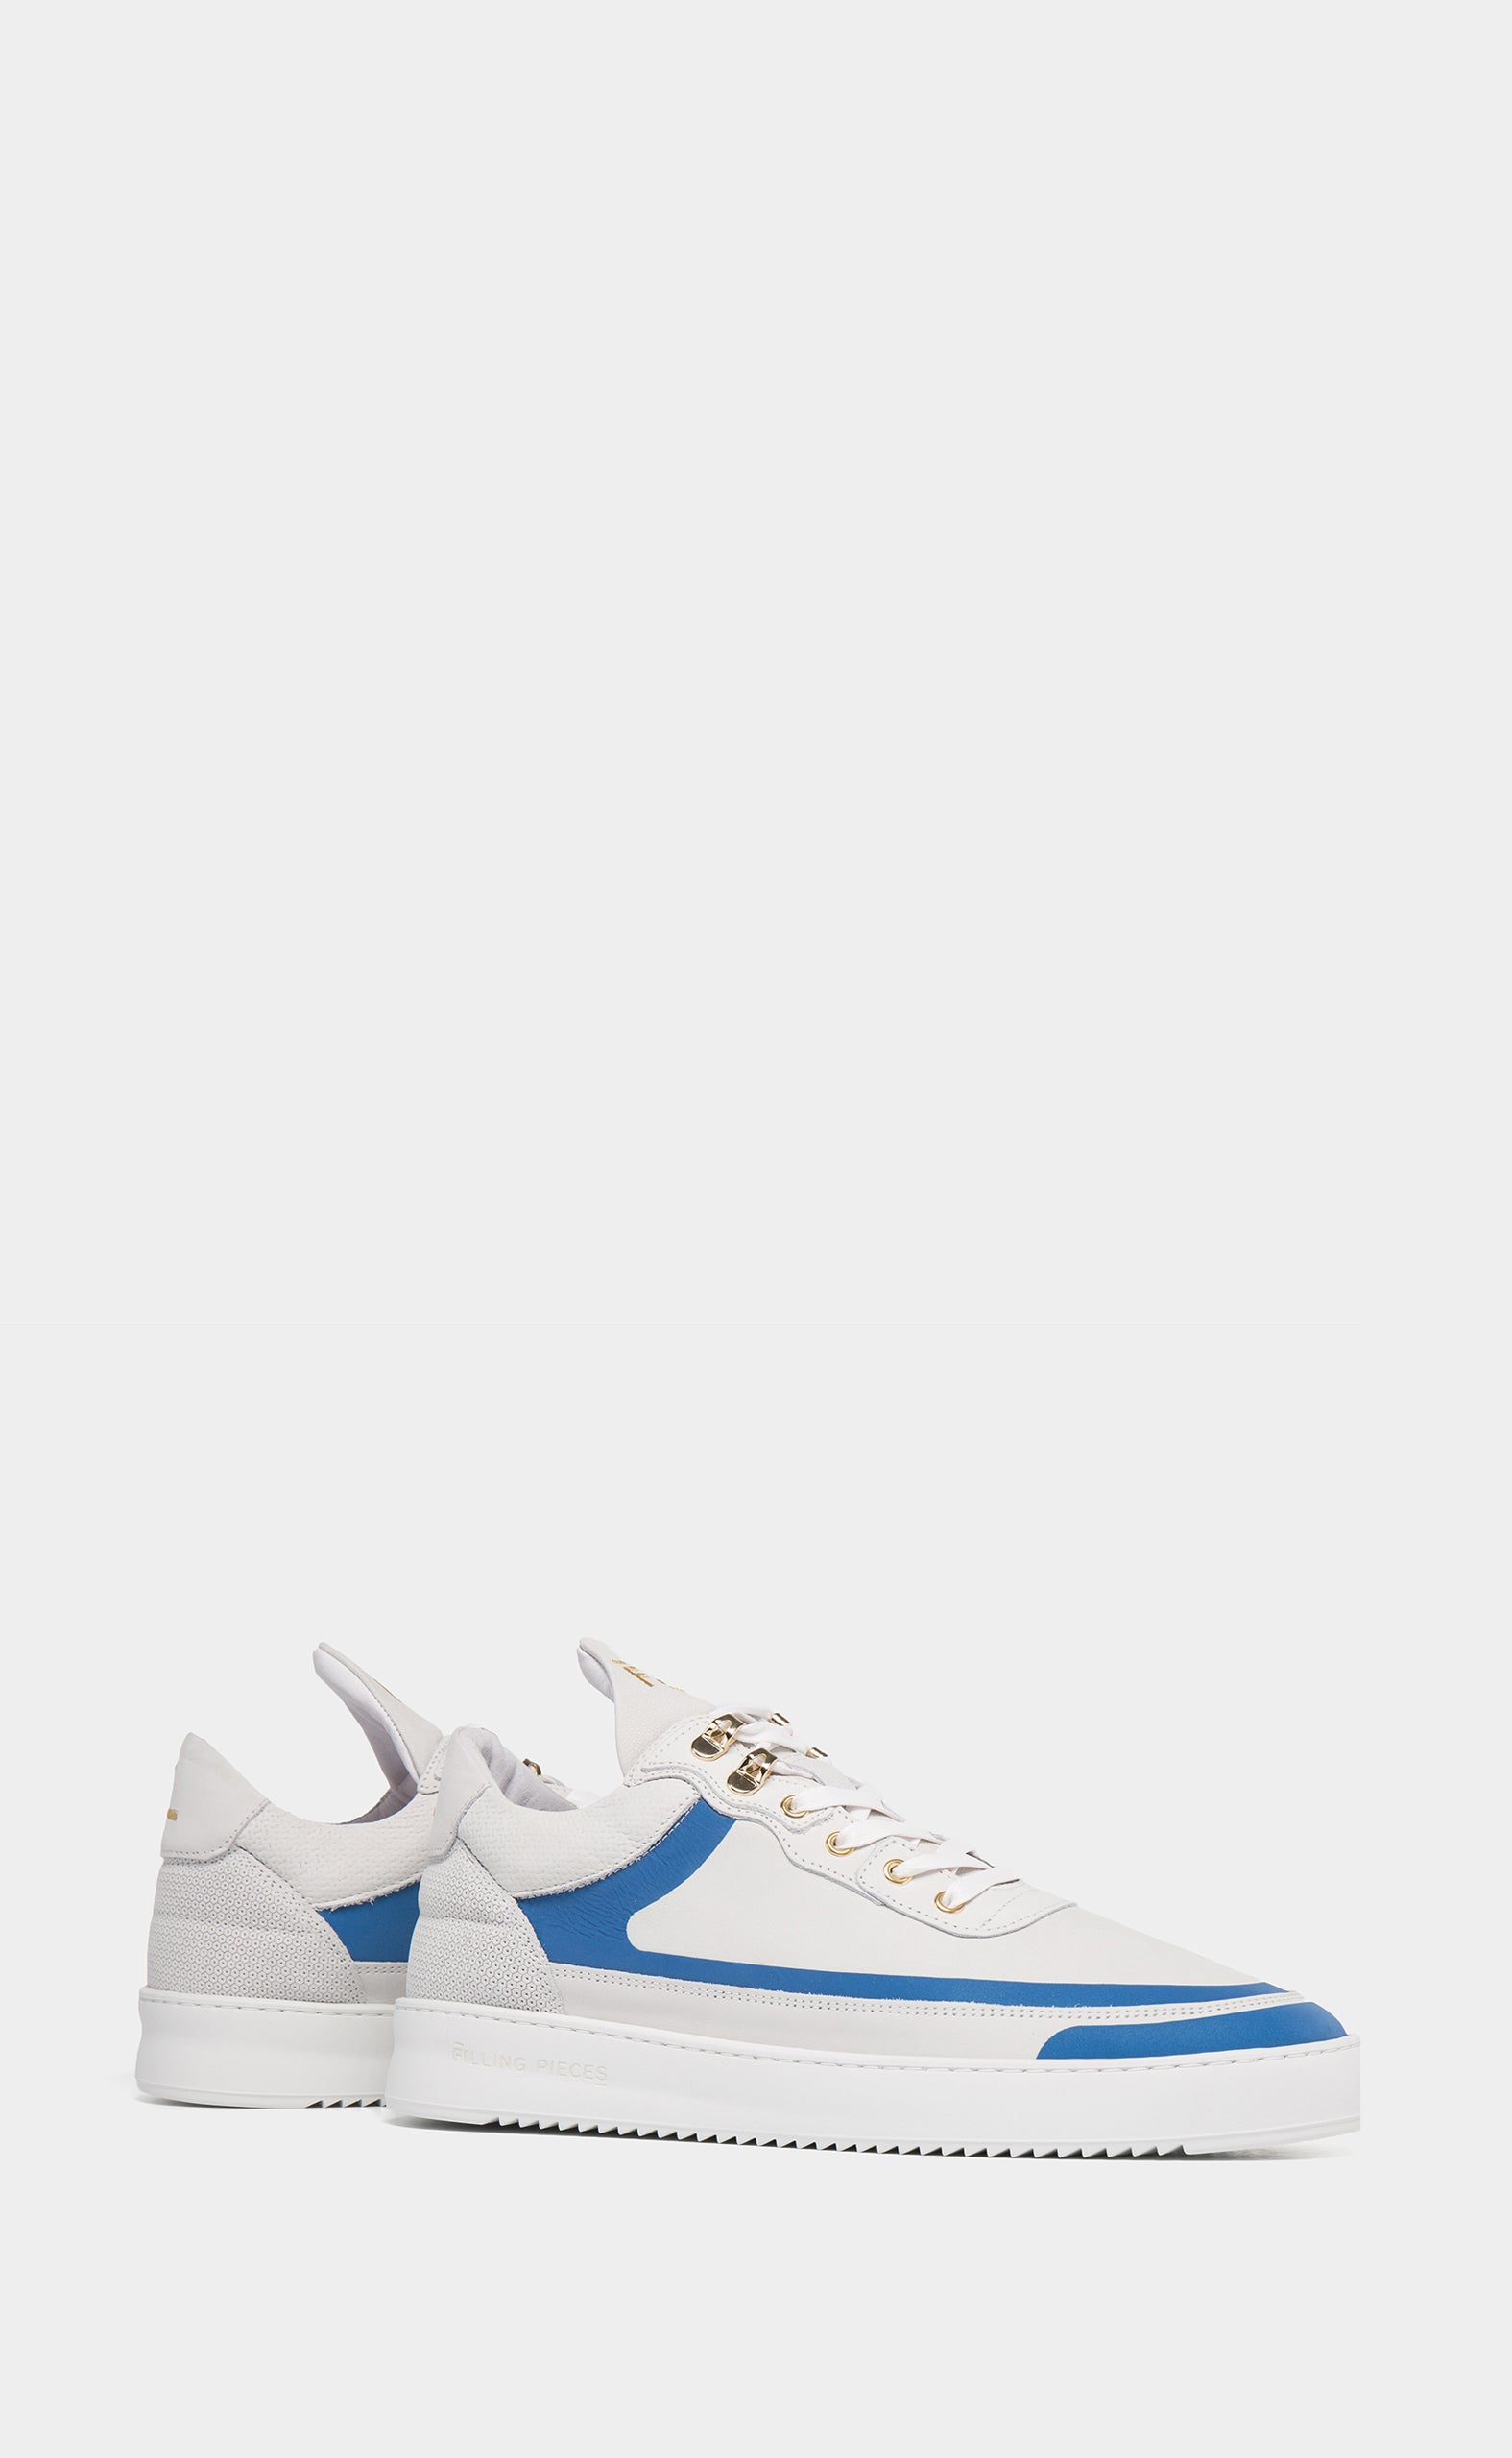 Low Top Ripple Meta White / Blue